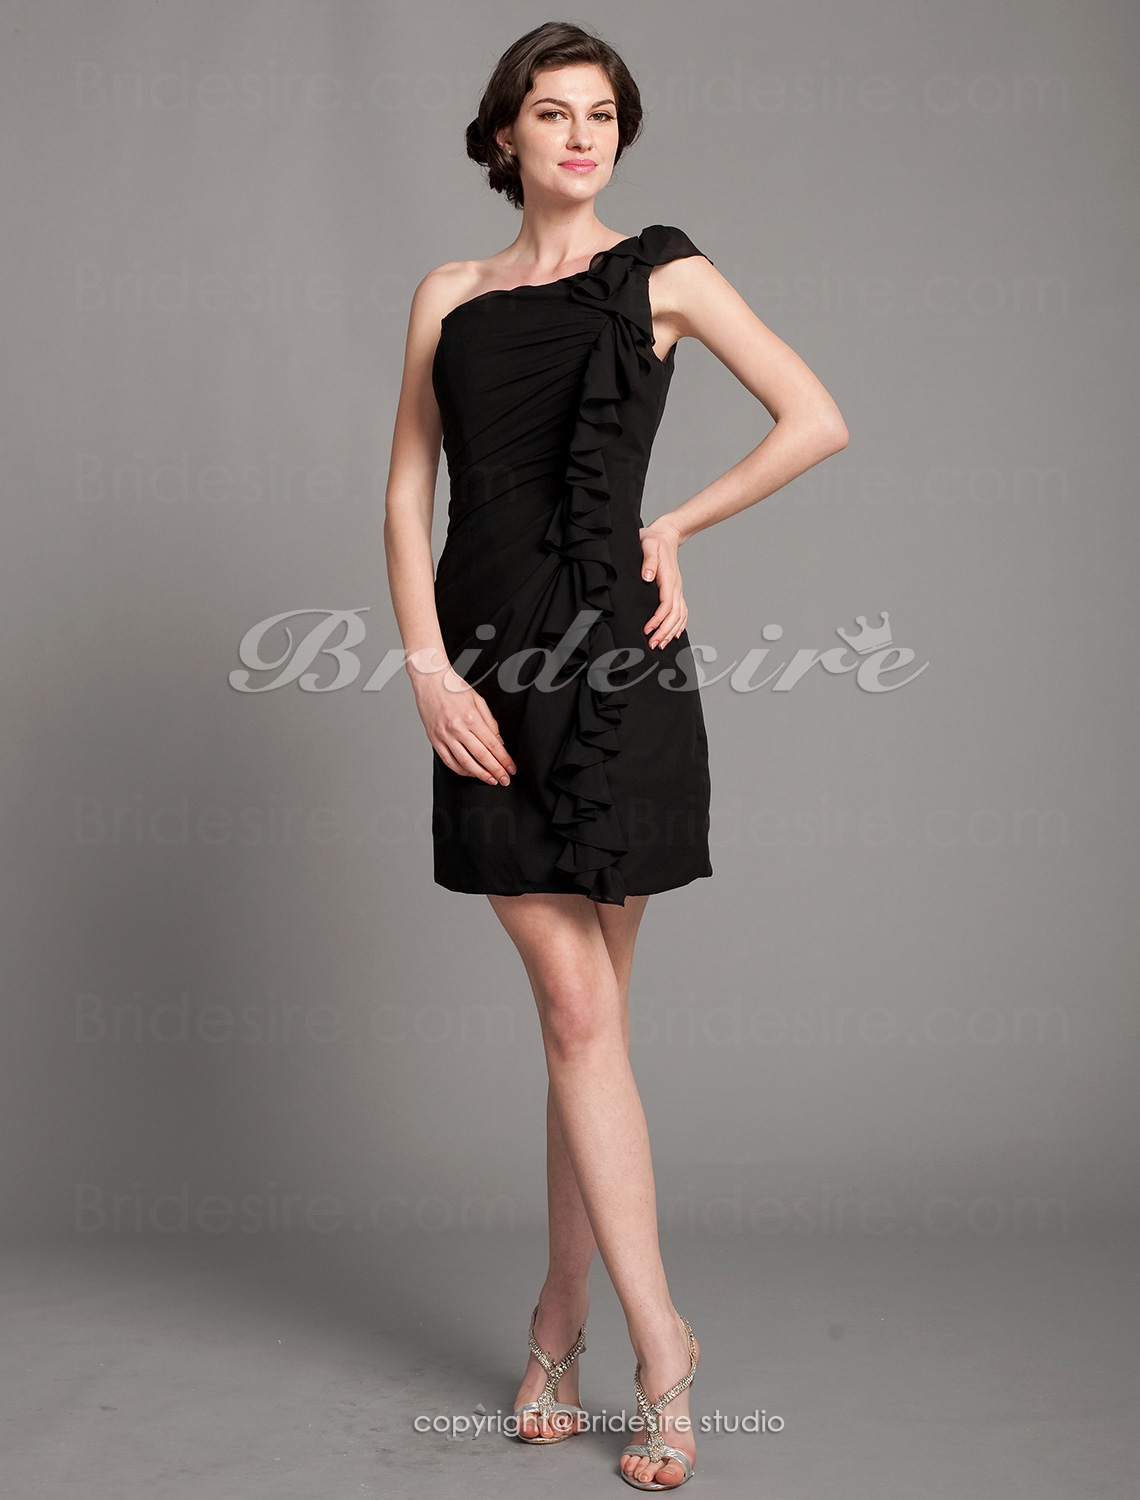 Sheath/Column Chiffon Short/Mini One Shoulder Mother of the Bride Dress